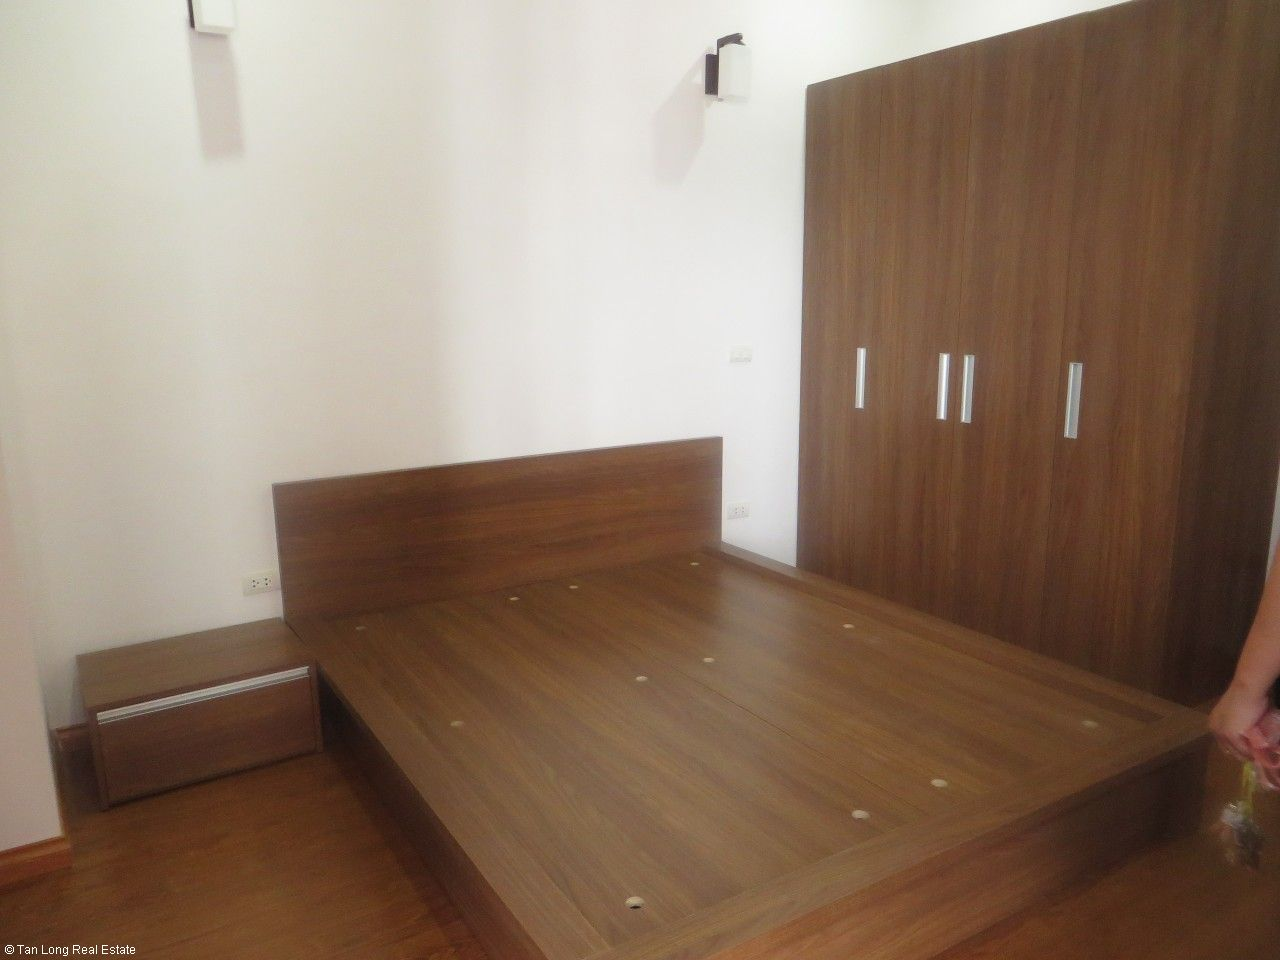 House in Gamuda, Hoang Mai district, Ha Noi for rent. 10